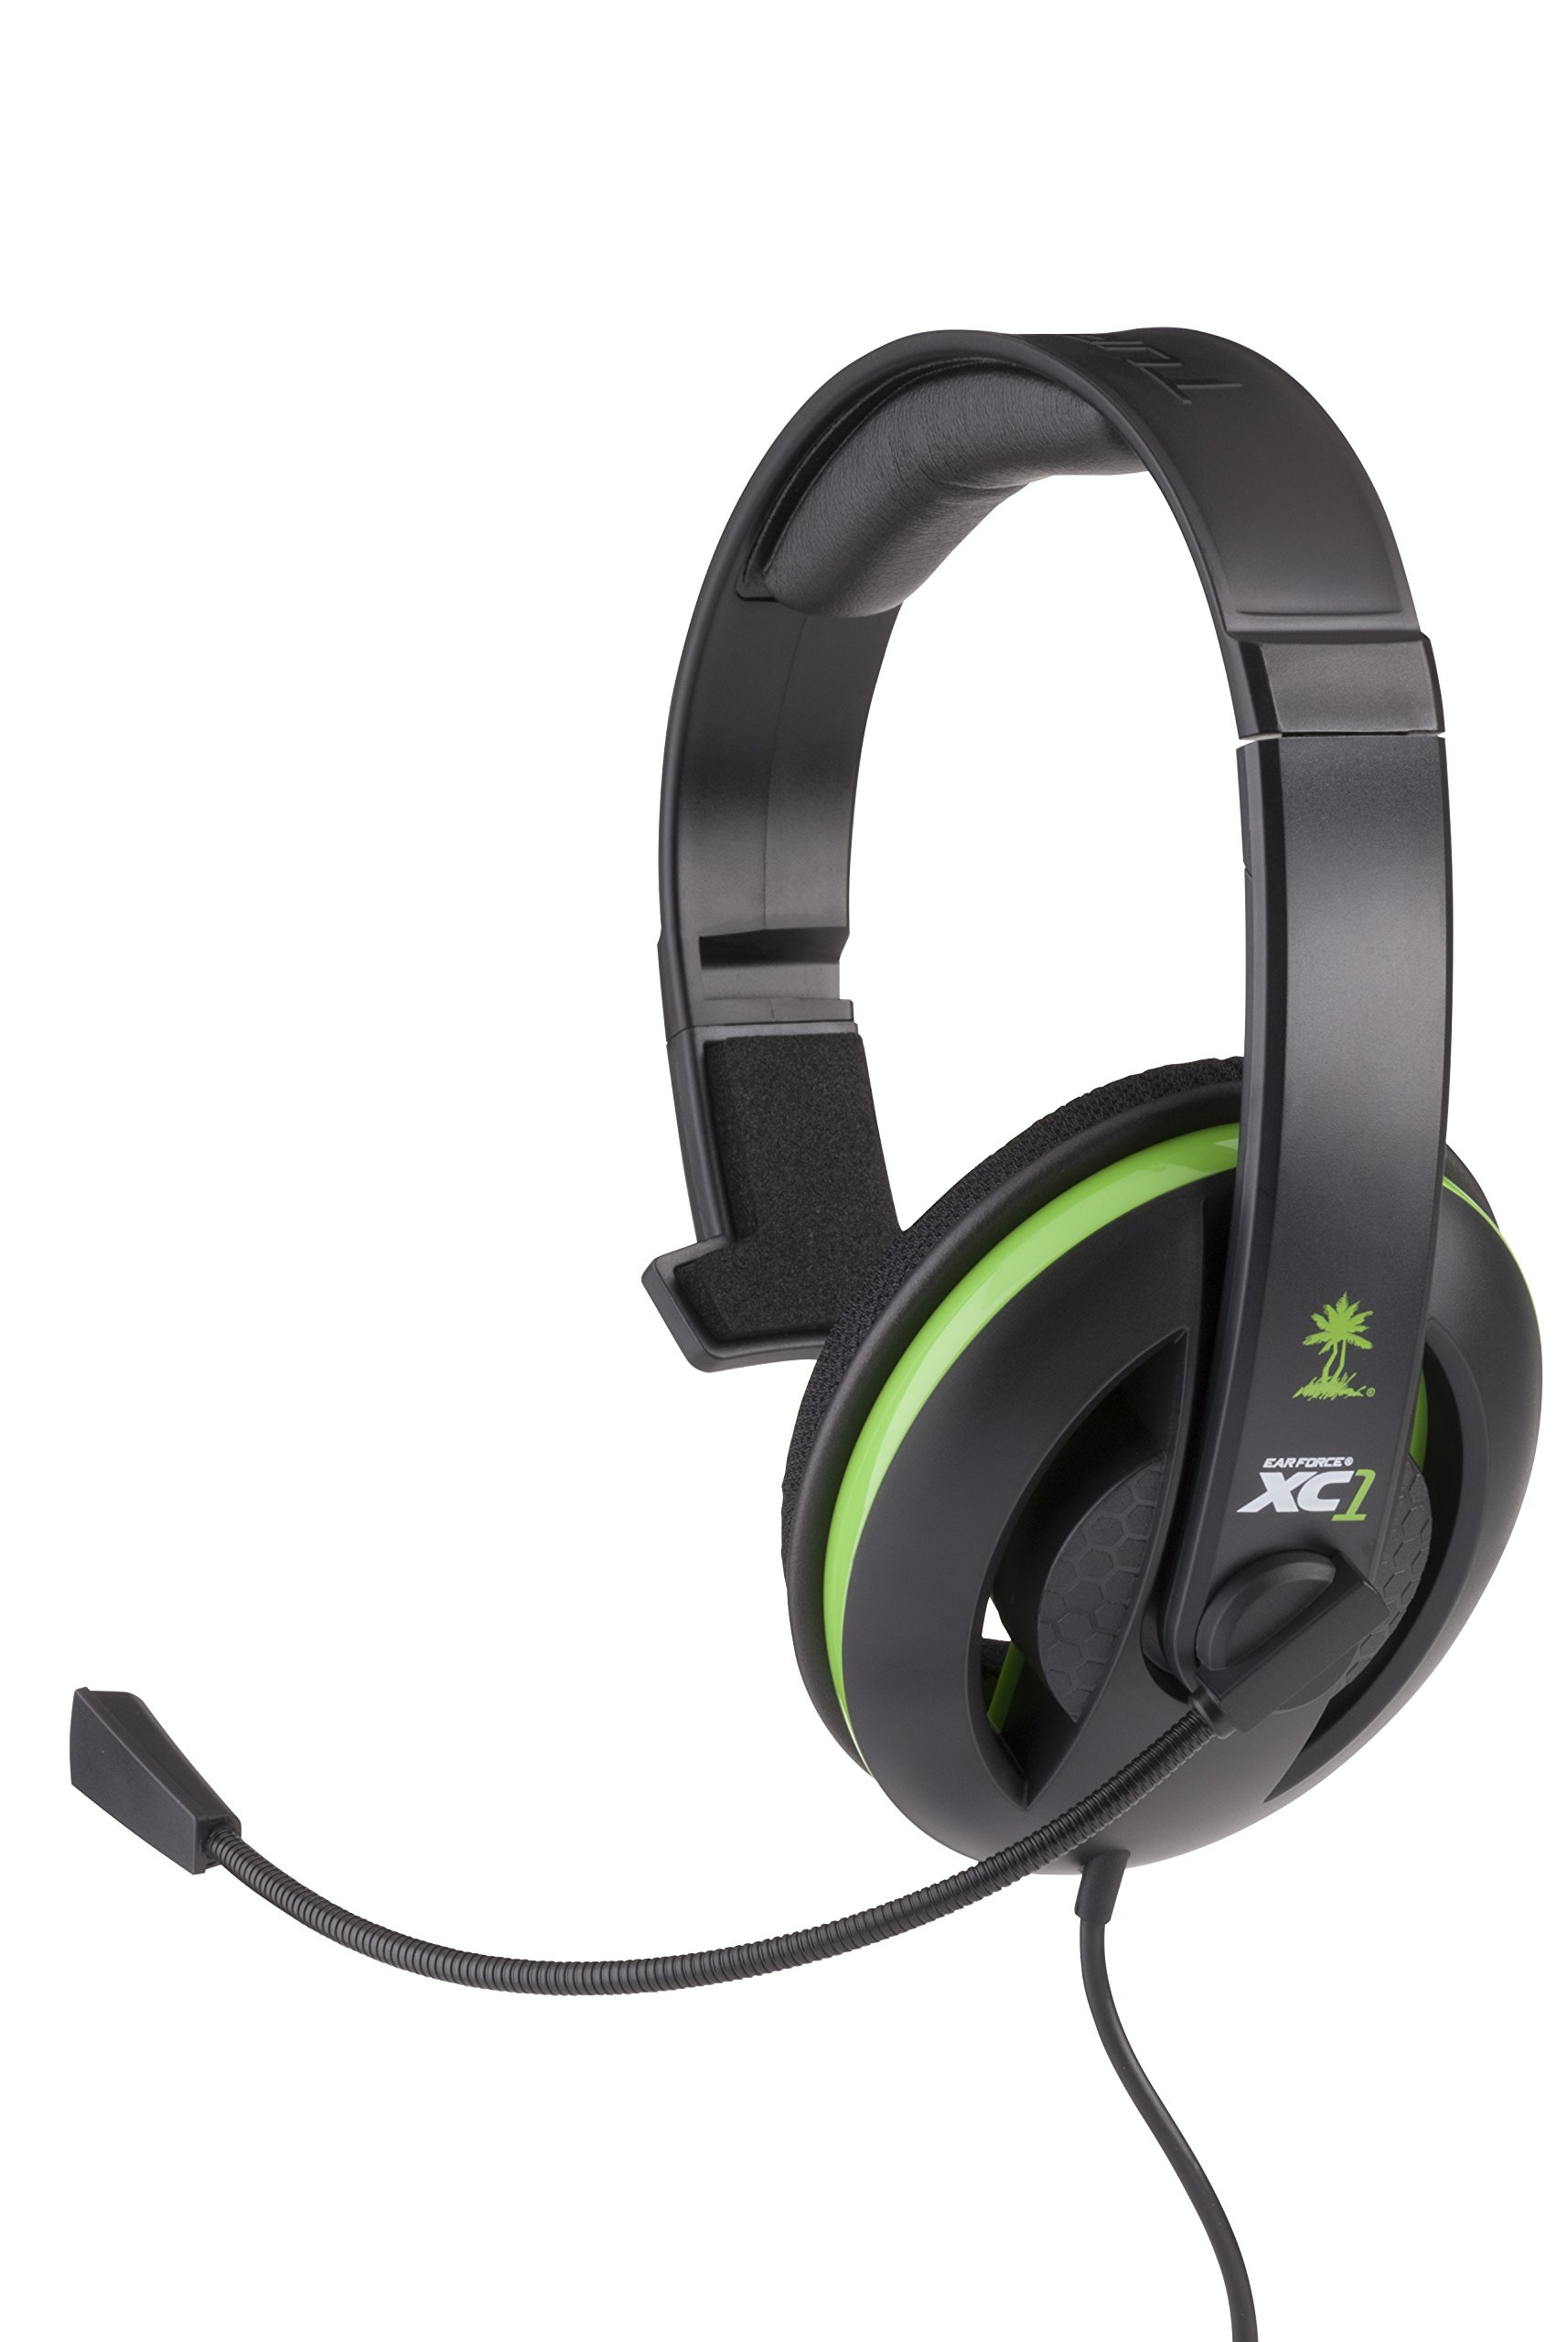 Turtle Beach - Ear Force XC1 Chat Communicator Gaming Headset - Xbox 360 (Discontinued by Manufacturer)